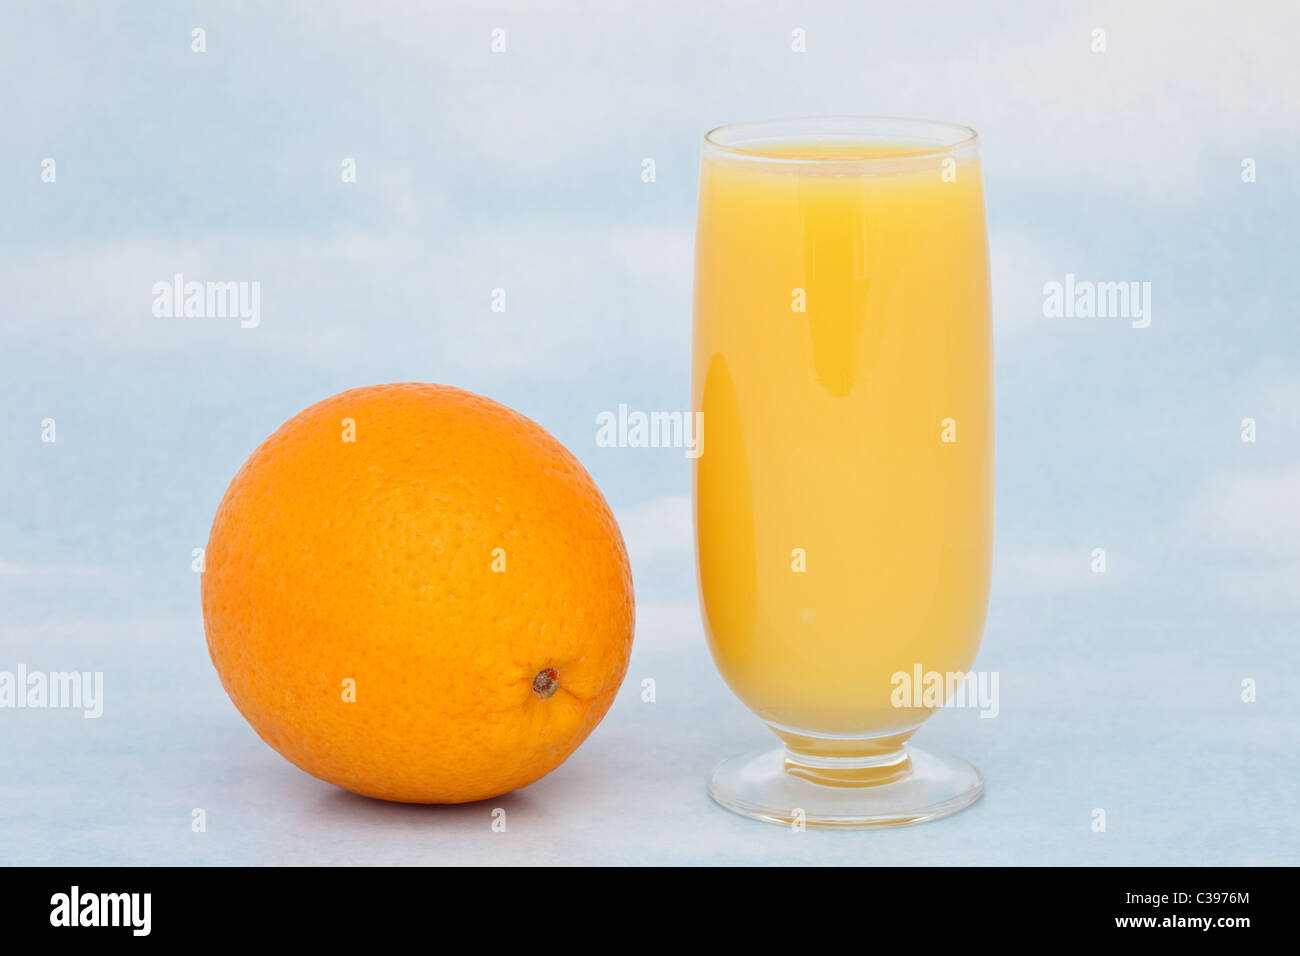 One glass of fresh orange juice with a whole orange containing vitamin C against a blue sky background - Stock Image